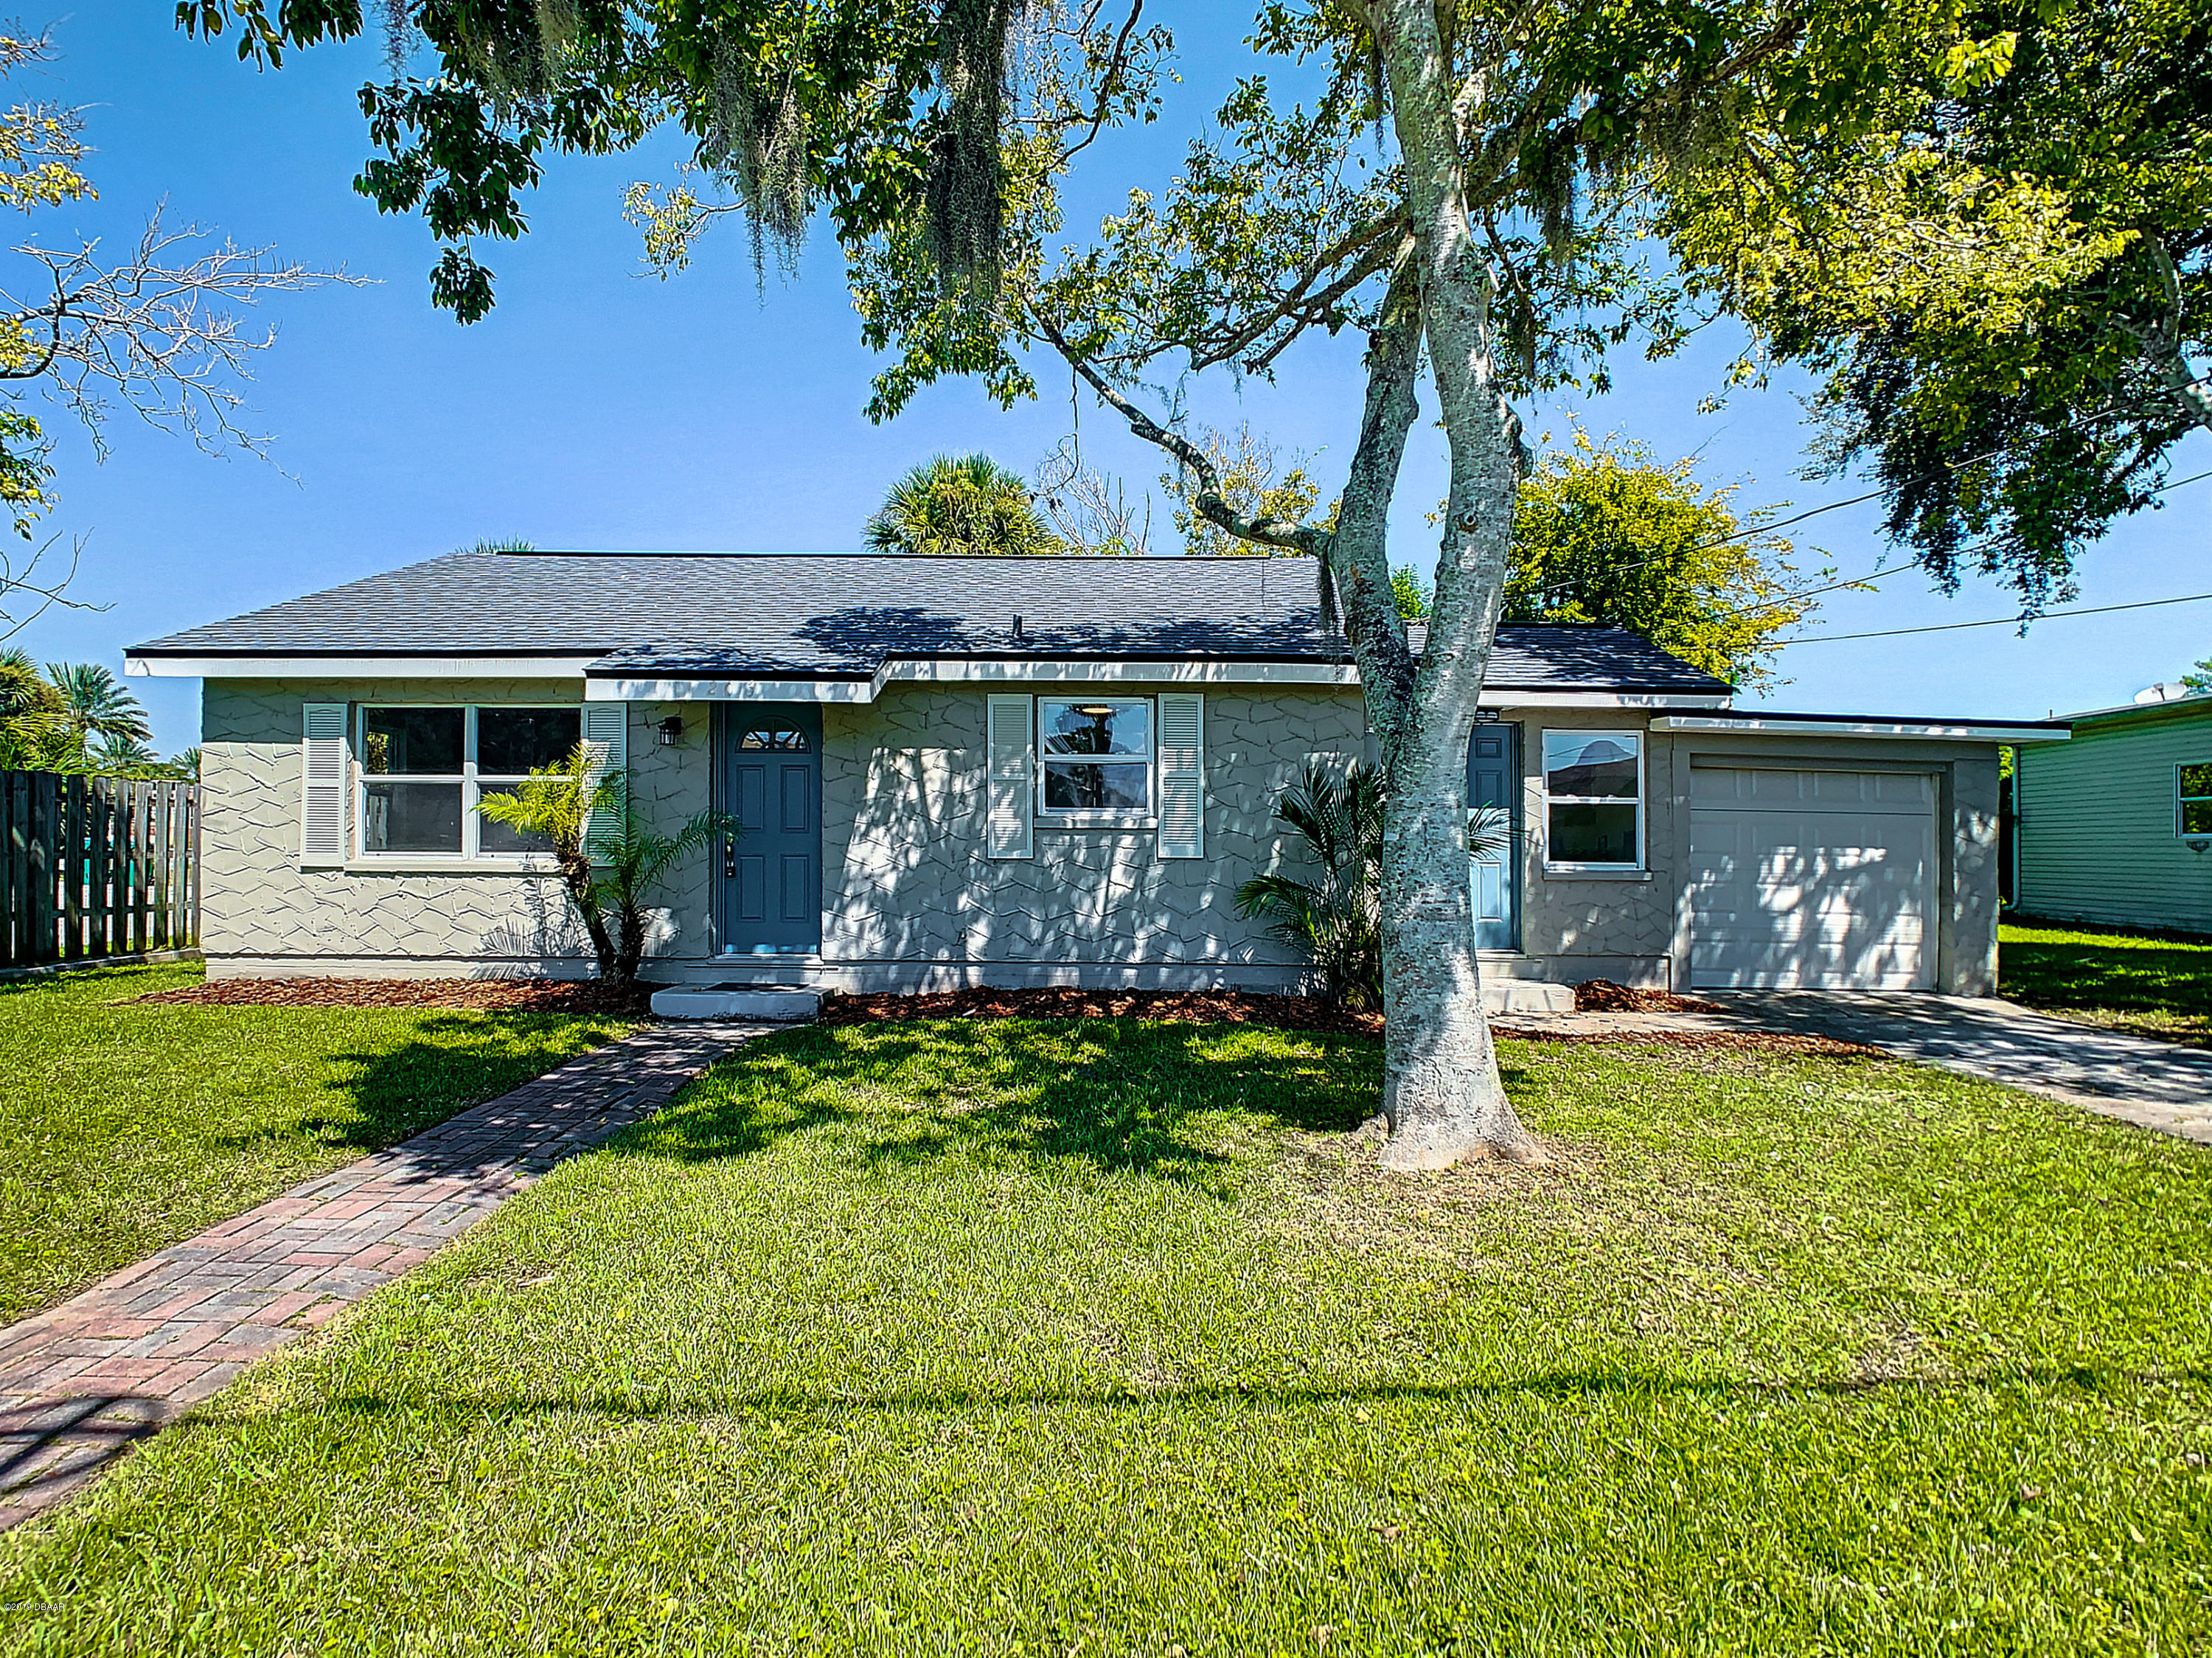 One of South Daytona 3 Bedroom Homes for Sale at 206 Mc Donald Street